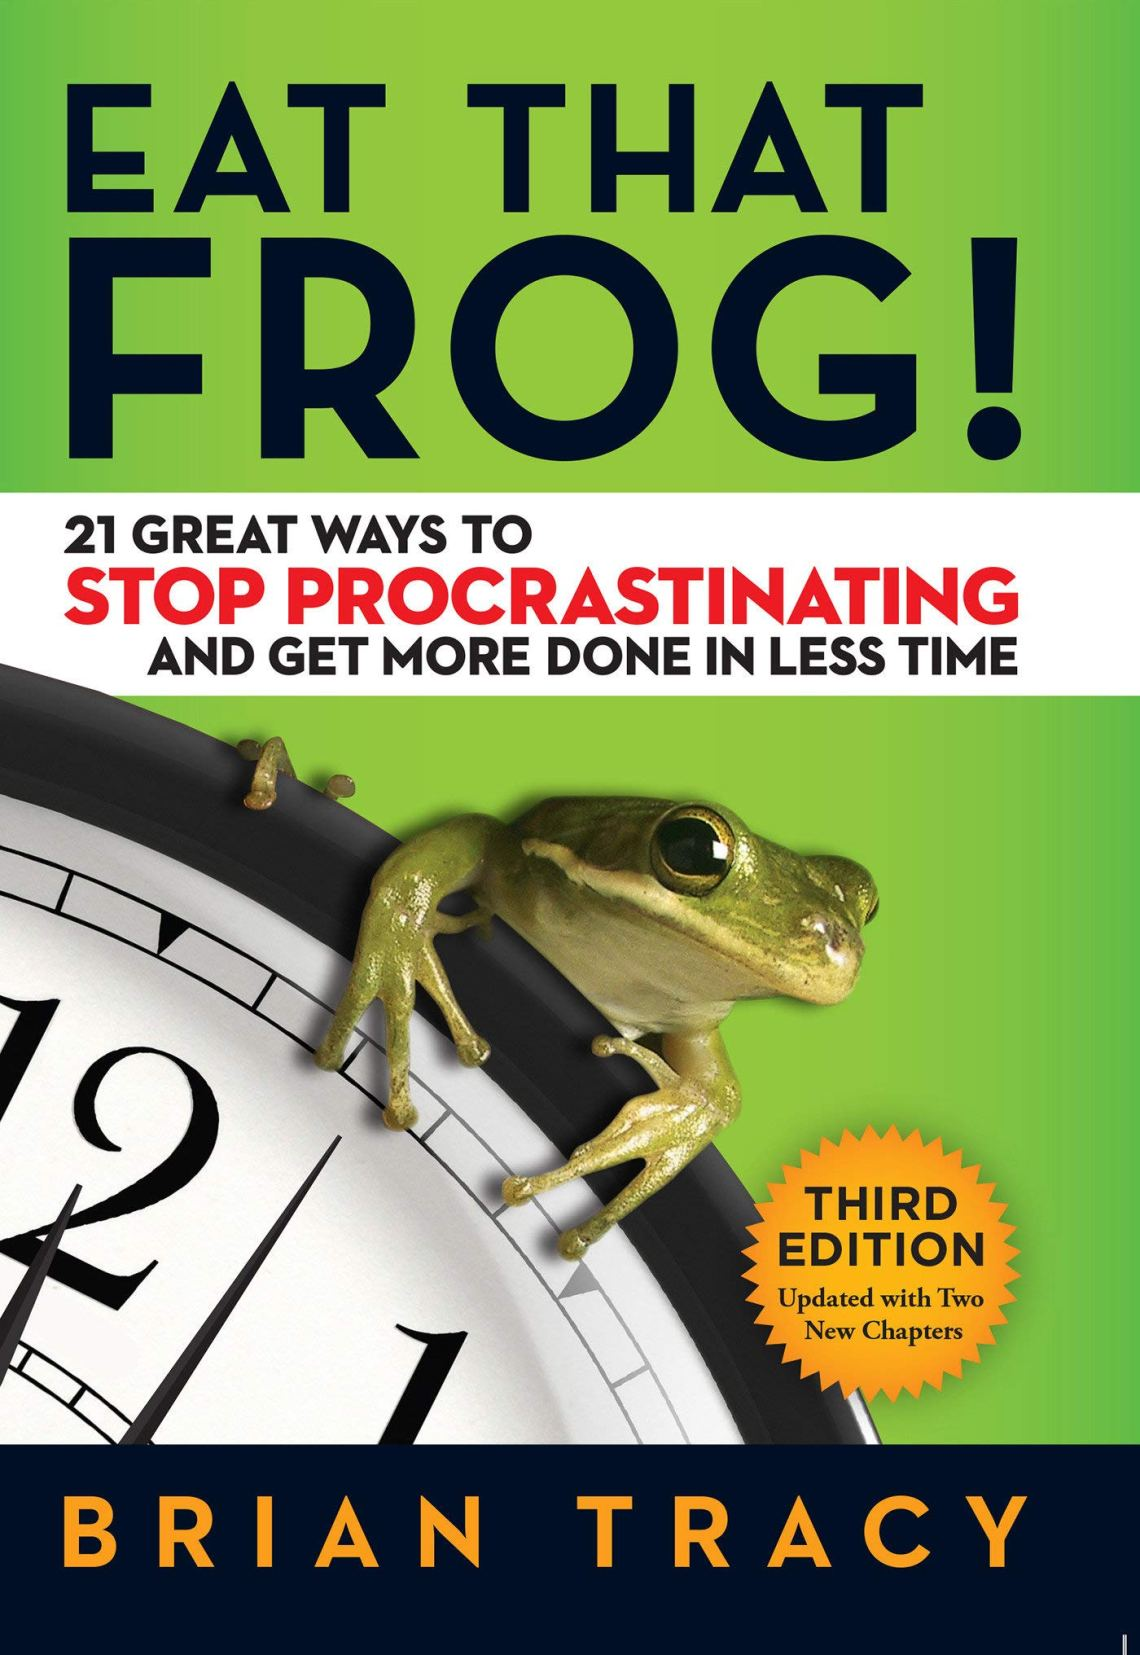 eat that frog one of self improvement books